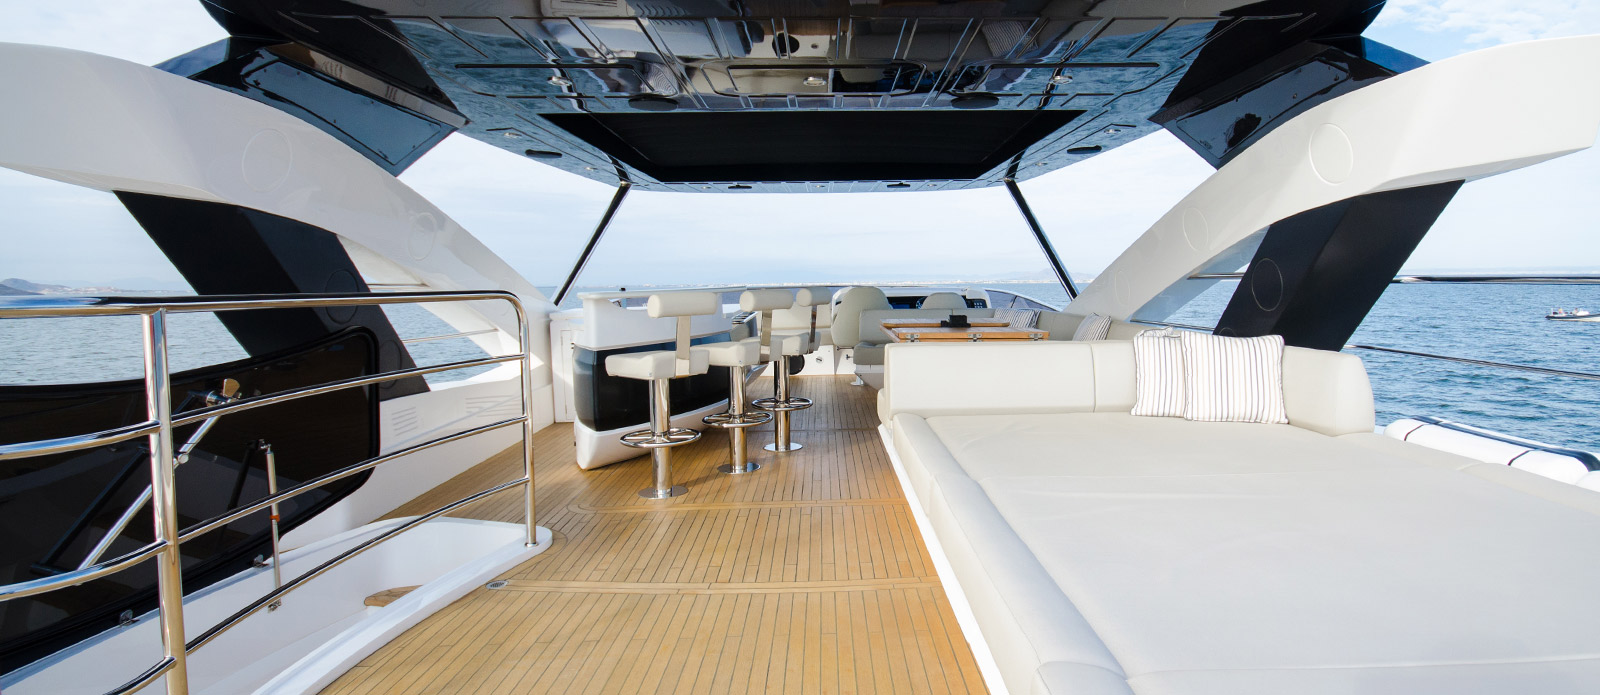 Sunseeker 86 Yacht - Flybridge